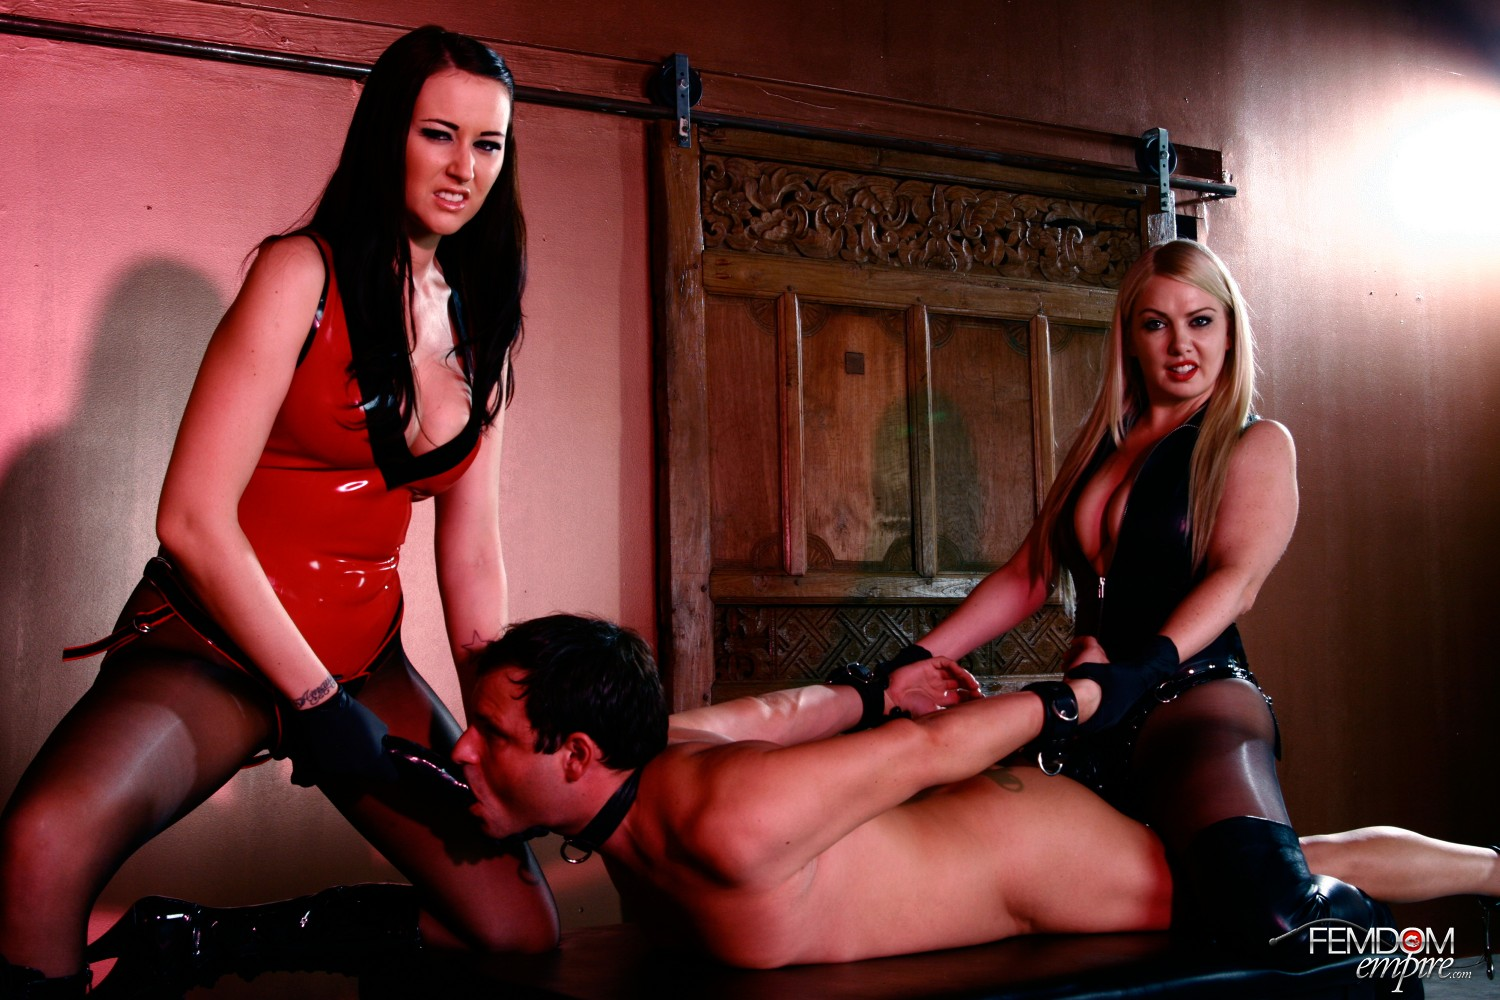 Dominatrixes Alexis Grace and Lexi Sindel love demeaning their mega-slut as they fill his jaws and bootie with their strap on dildo dicks.